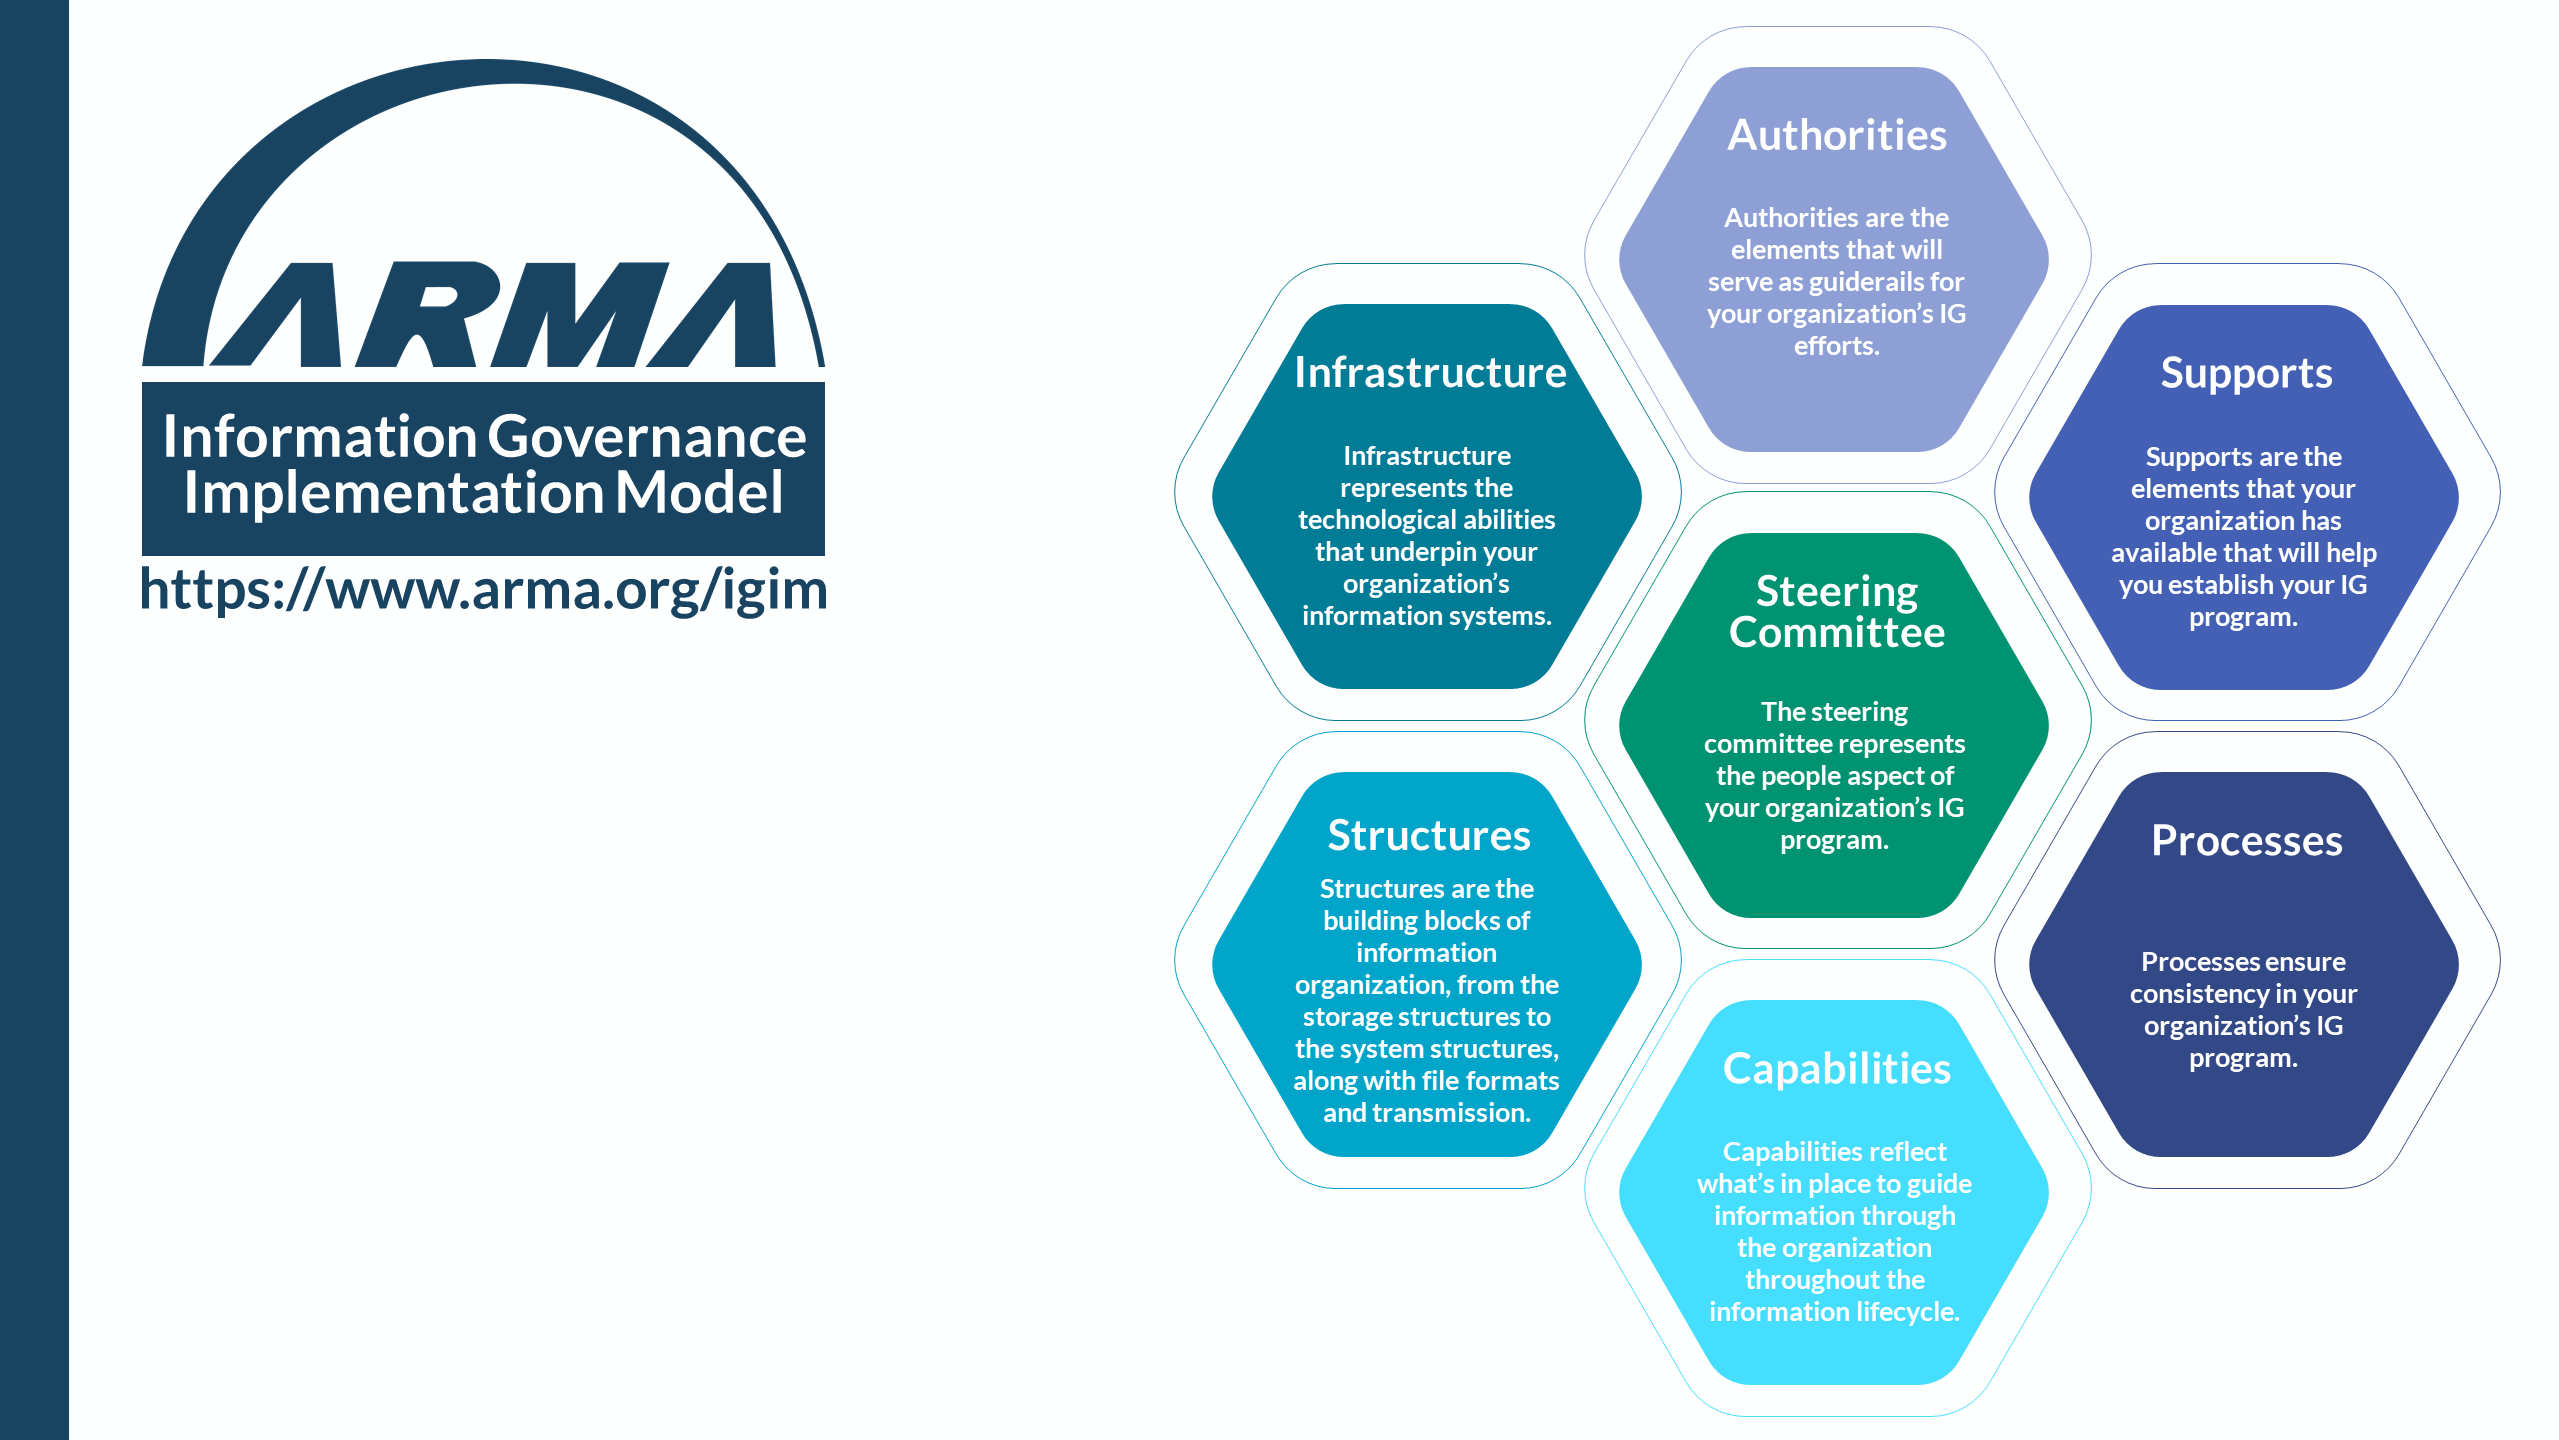 ARMA Information Governance Implementation Model Hive Explained